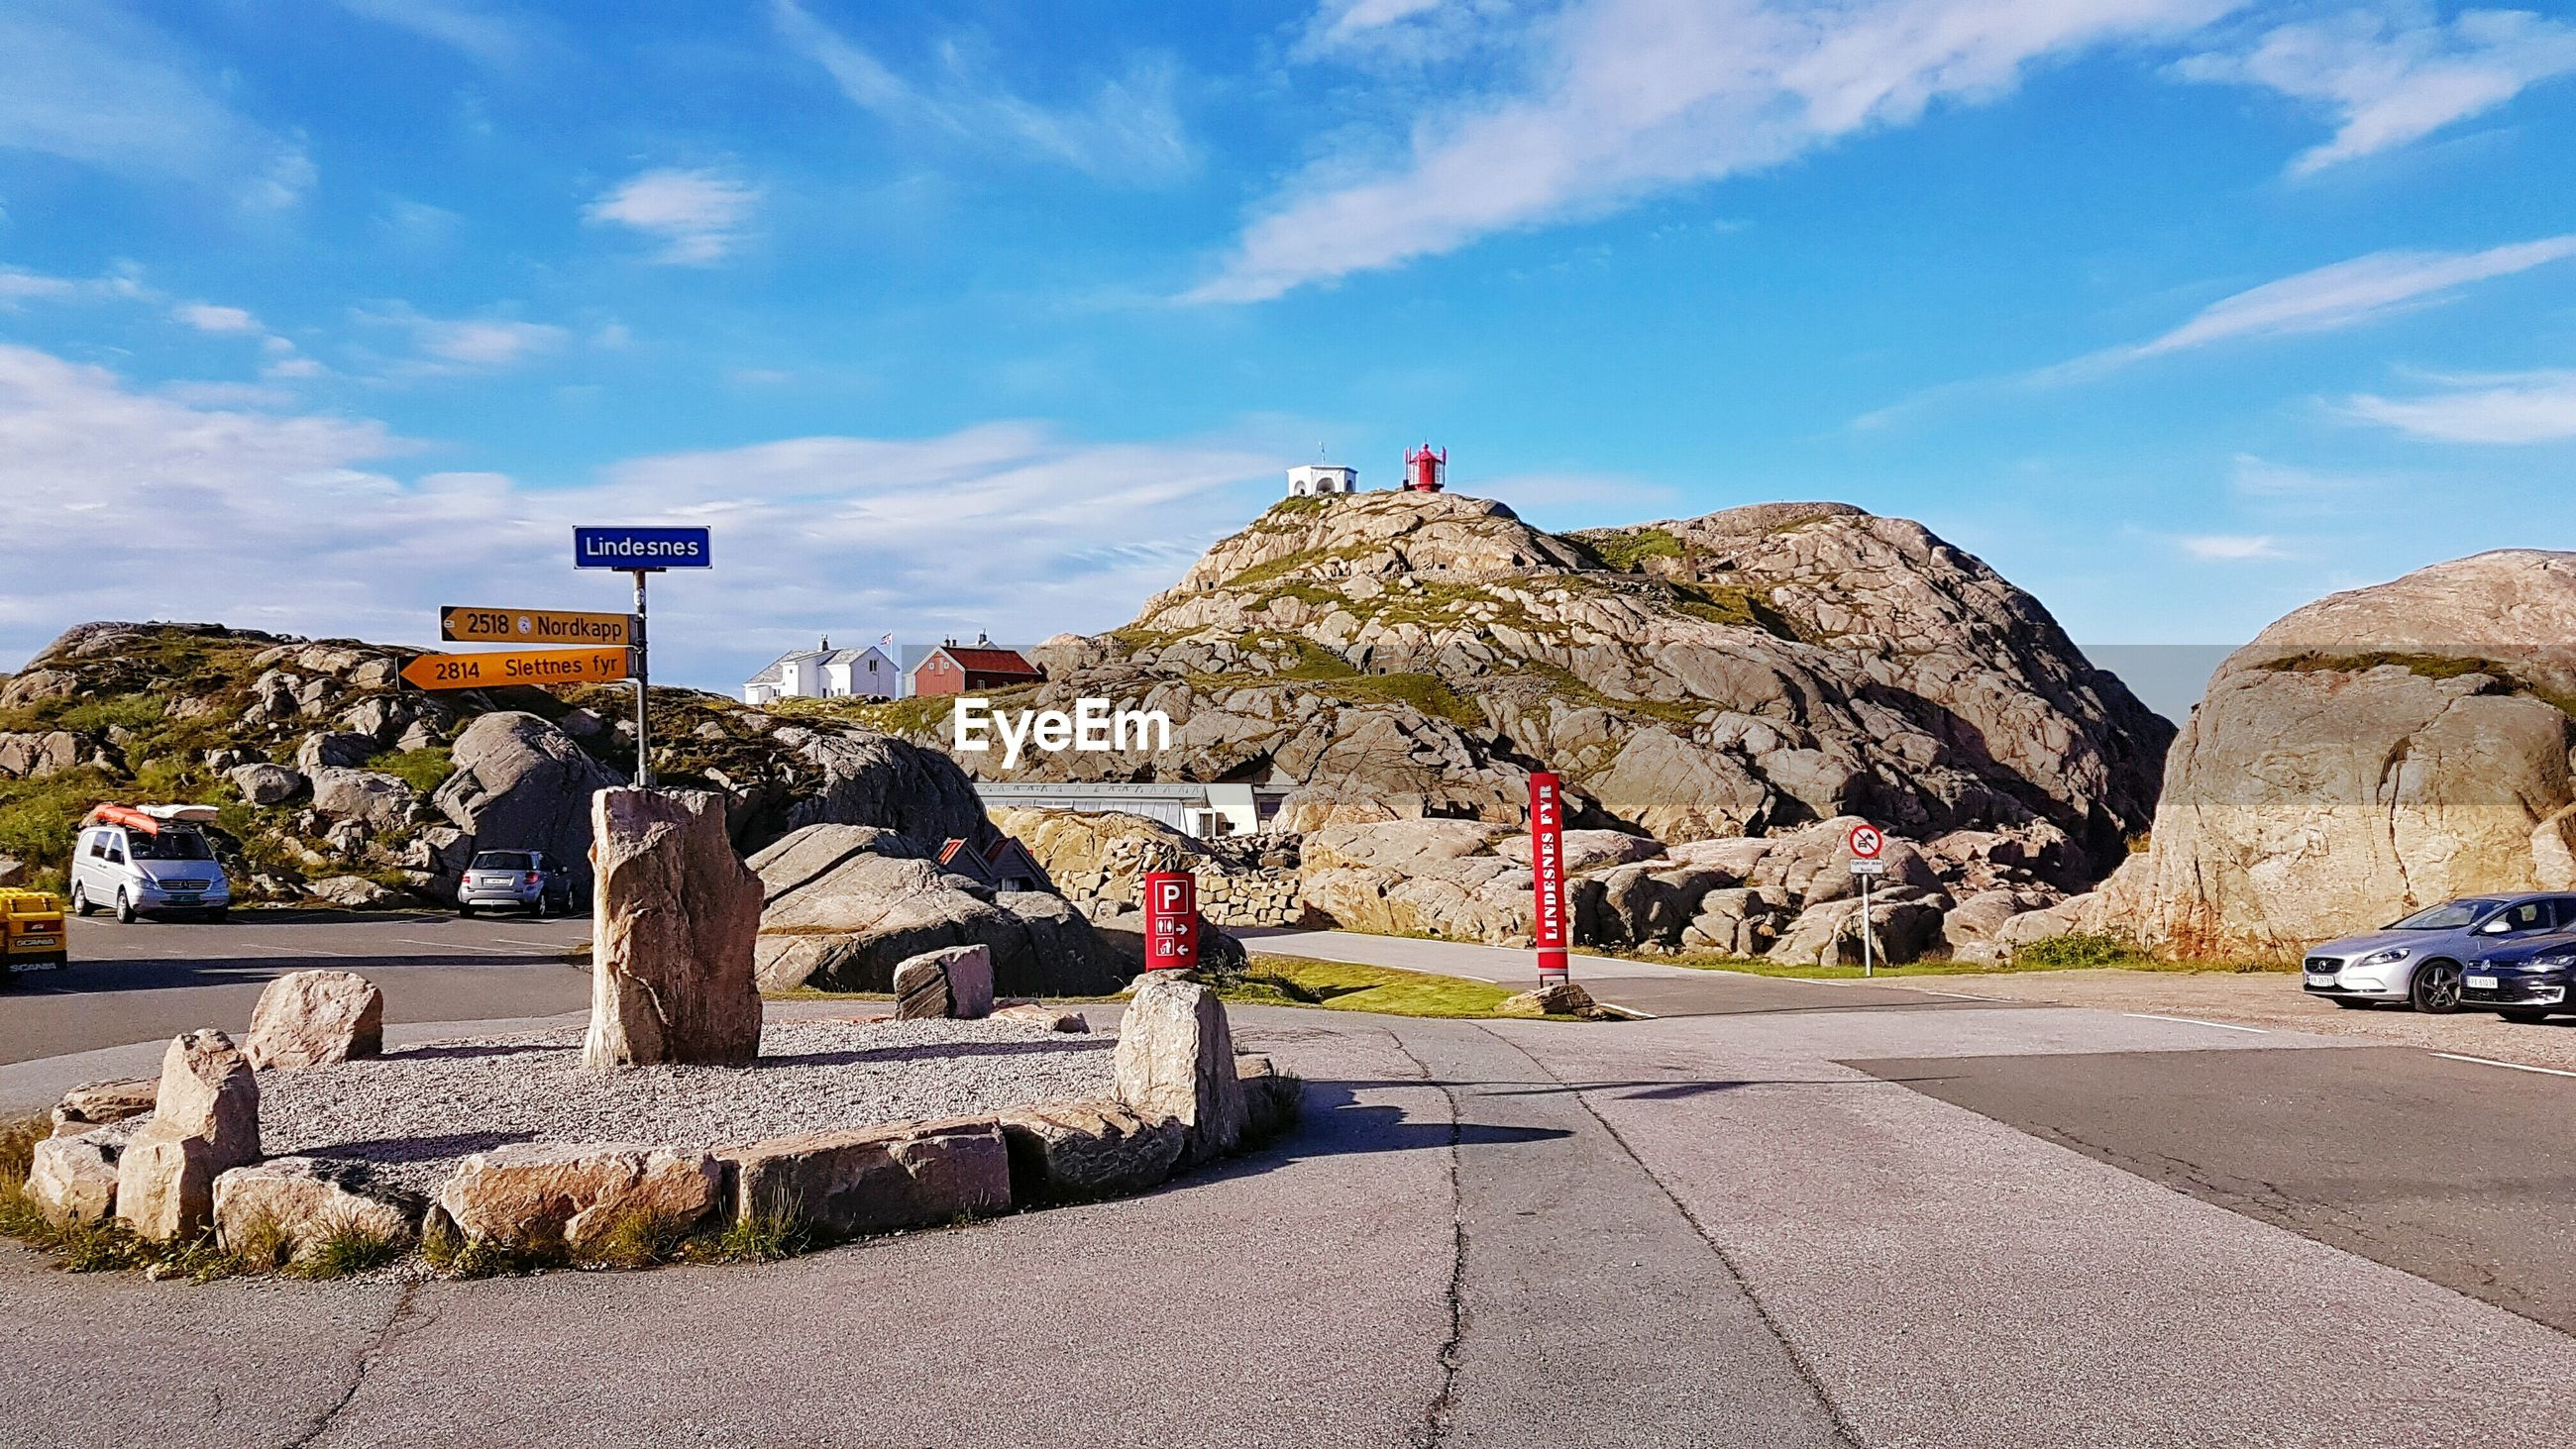 Lindesnes lighthouse on rock formation against sky